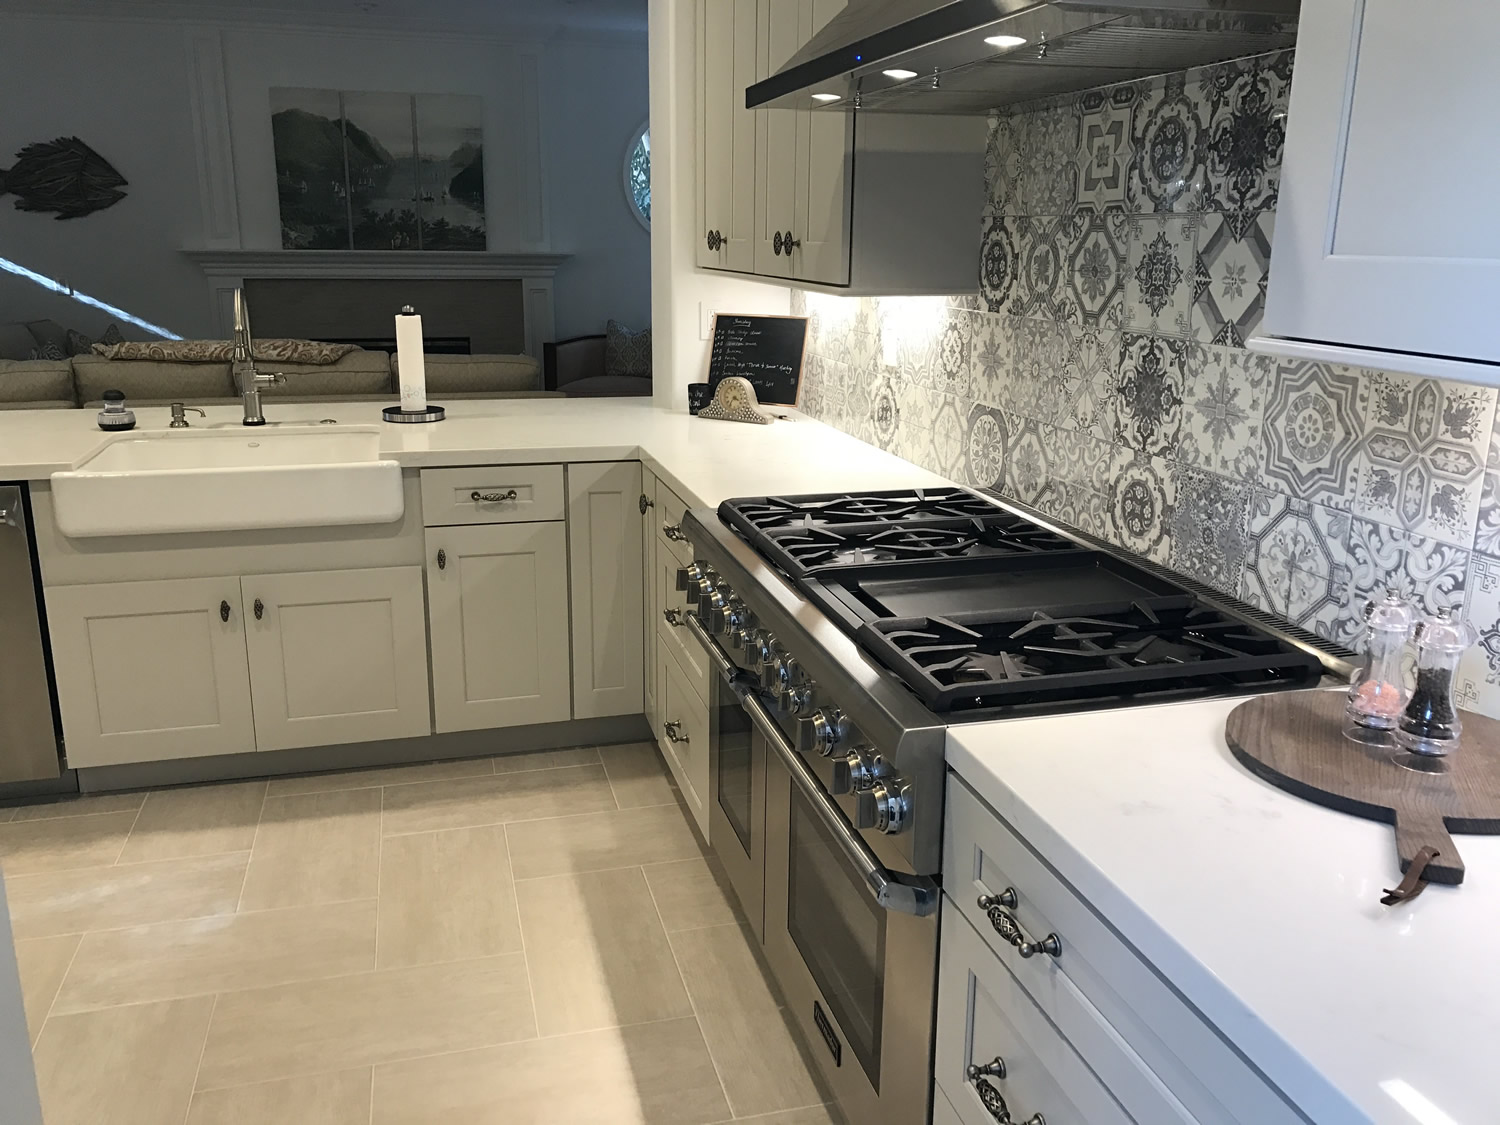 kitchen and bath remodel modular countertops dove canyon traditional elegance with a twist